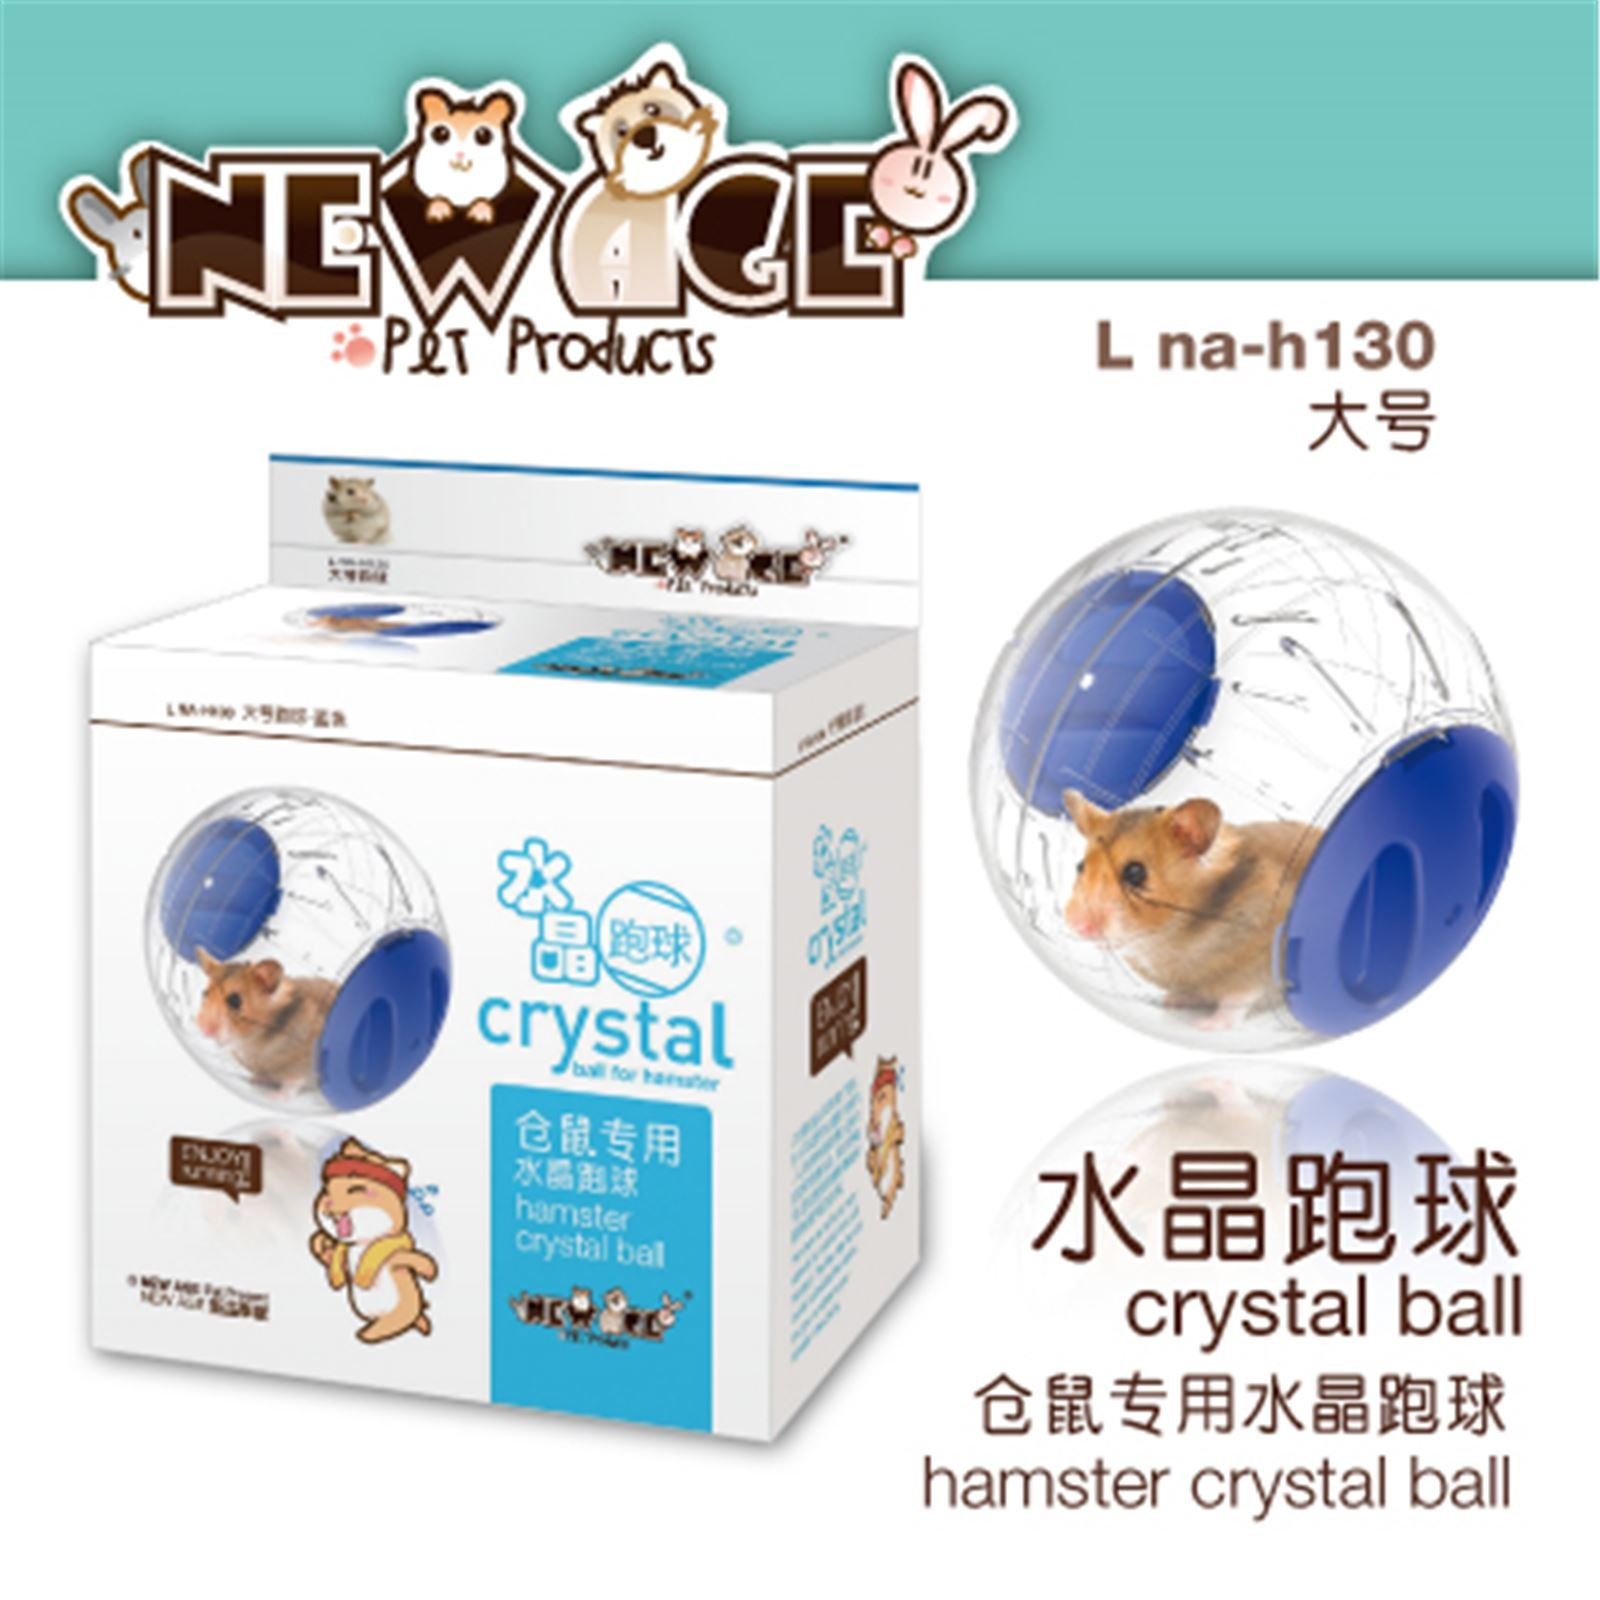 Edai New Age Hamster Crystal Ball L Blue